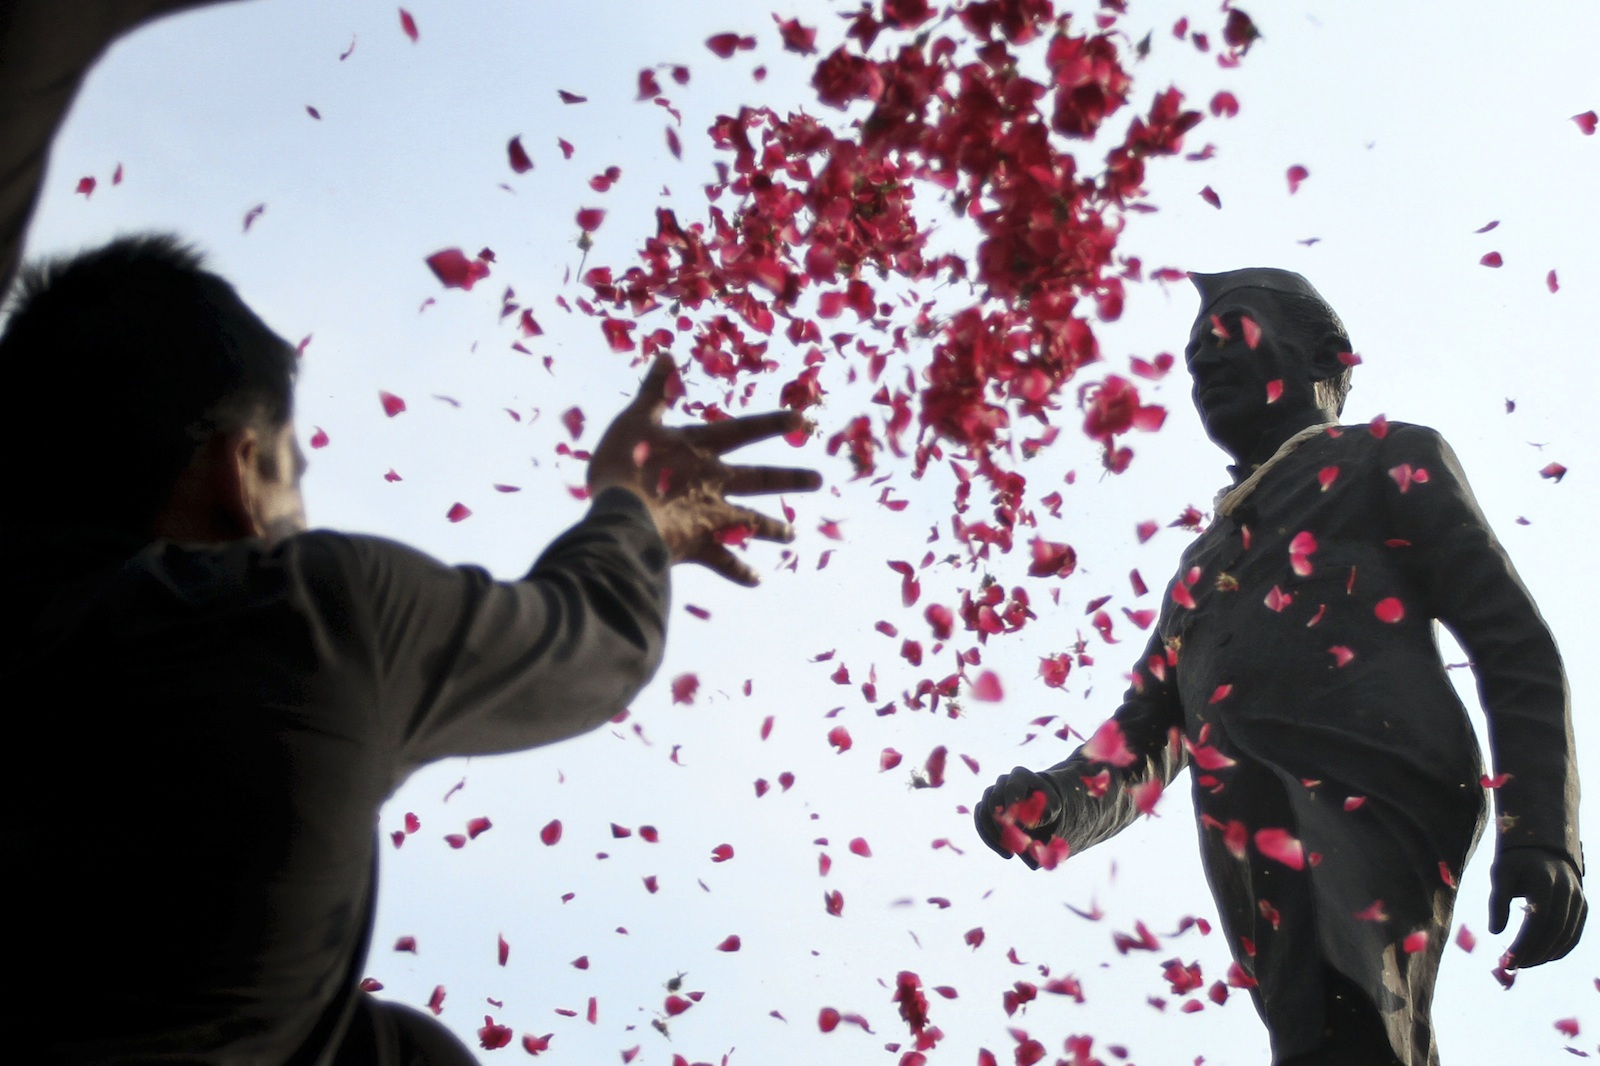 An Indian man throws petals on a statue of India's first prime minister Jawaharlal Nehru on his birth anniversary in Ahmadabad, India, Friday, Nov. 14, 2014.